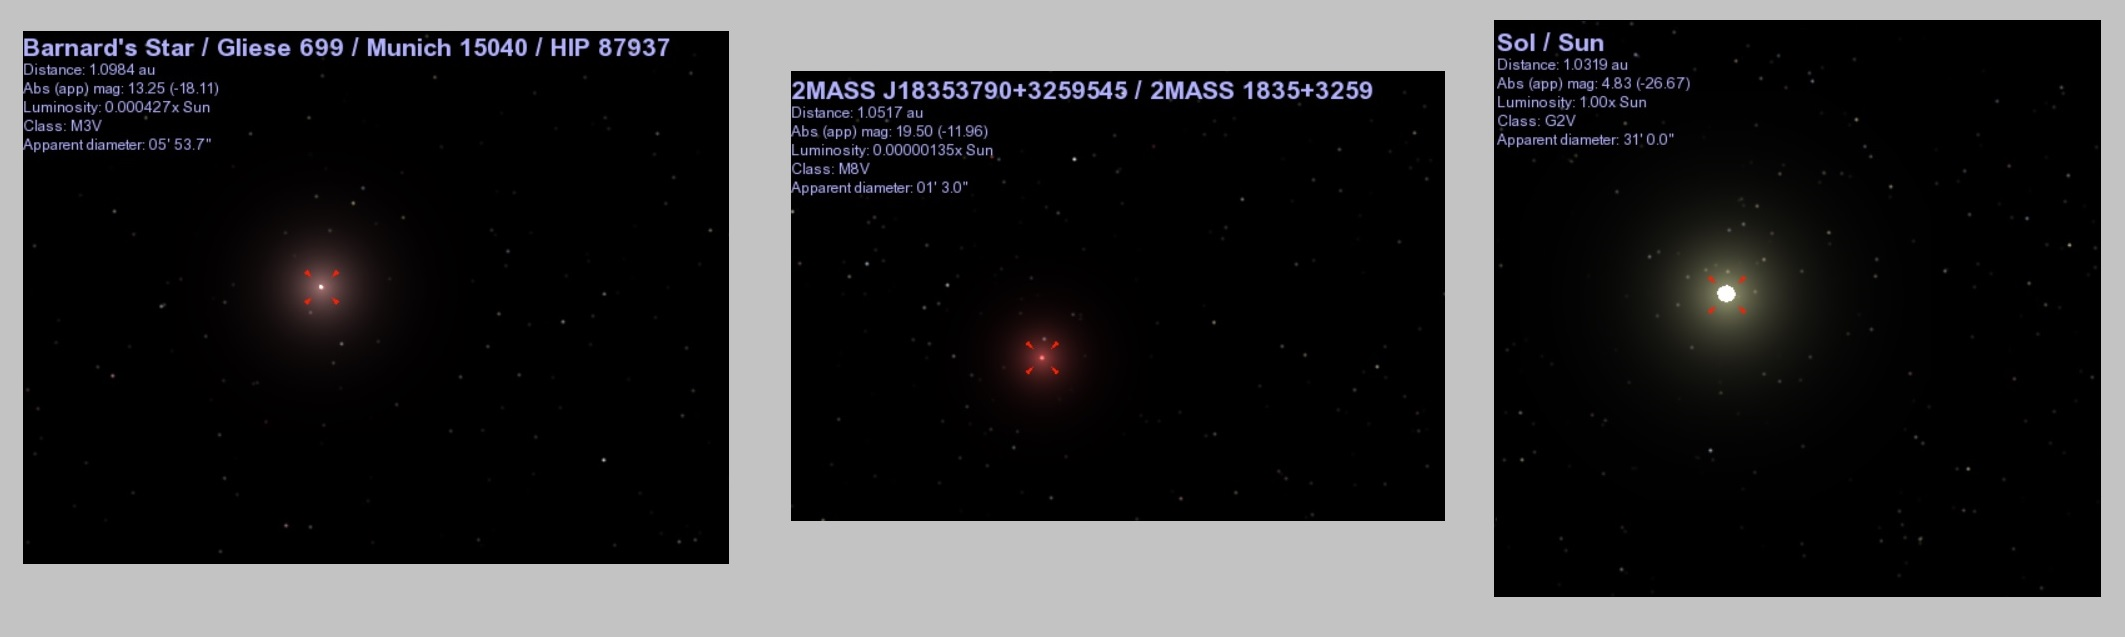 Barnard's Star, 2MASS J18353790+3259545, and the sun as they would appear from a distance of 1 AU, according to the Celestia app.